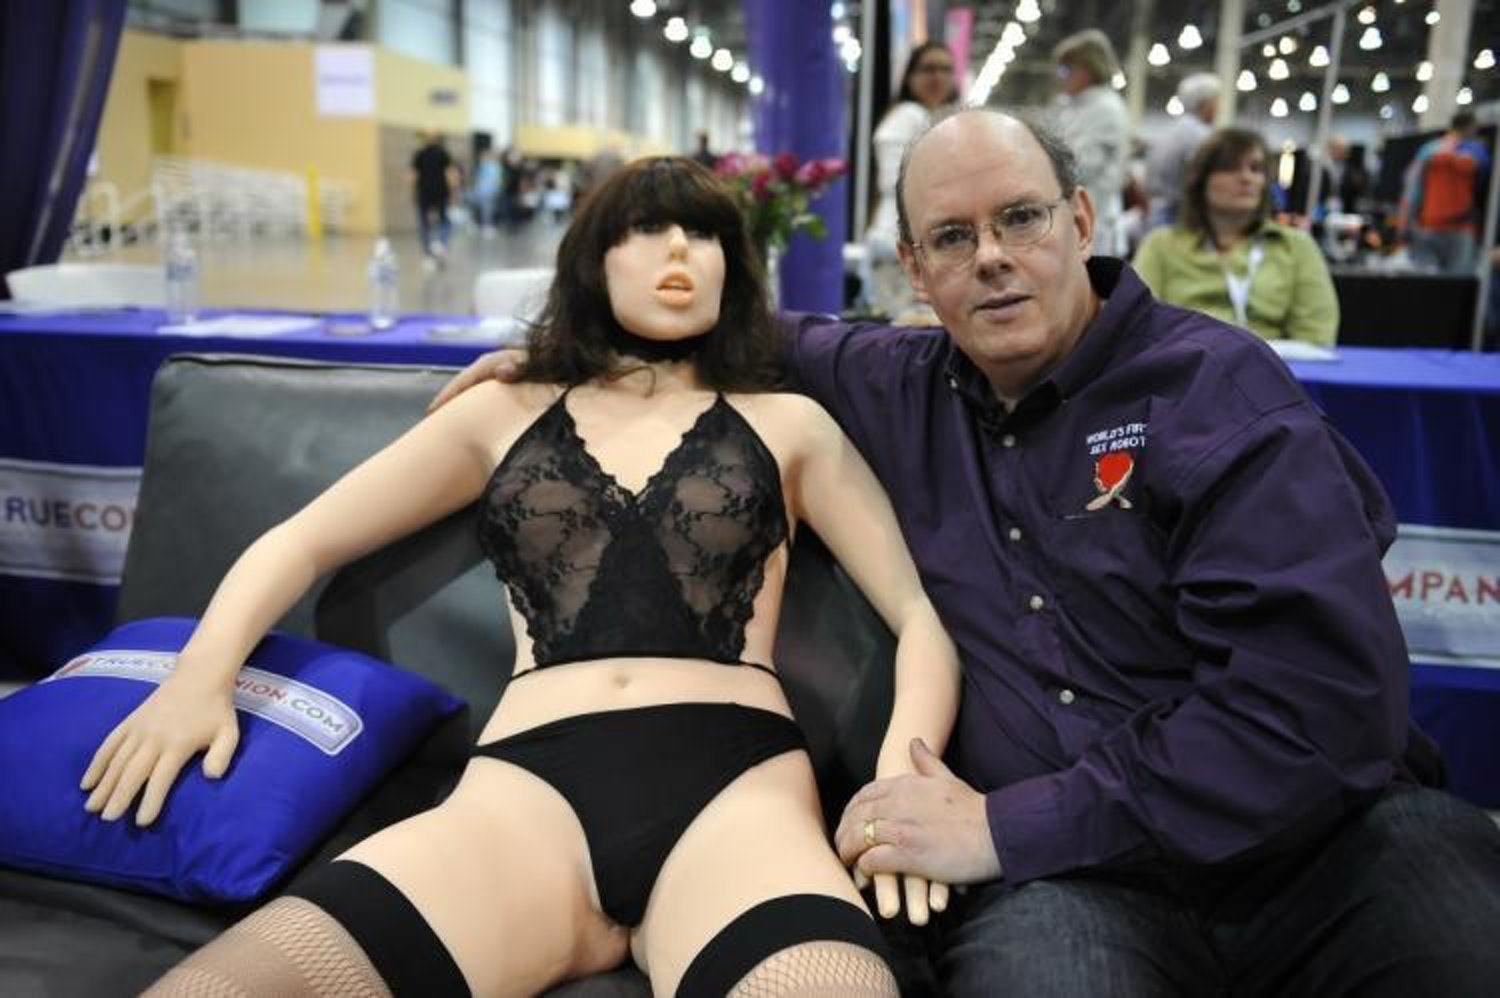 Inventor Douglas Hines with his Frankenstein's cum monster, the Roxxxy robot sex doll.